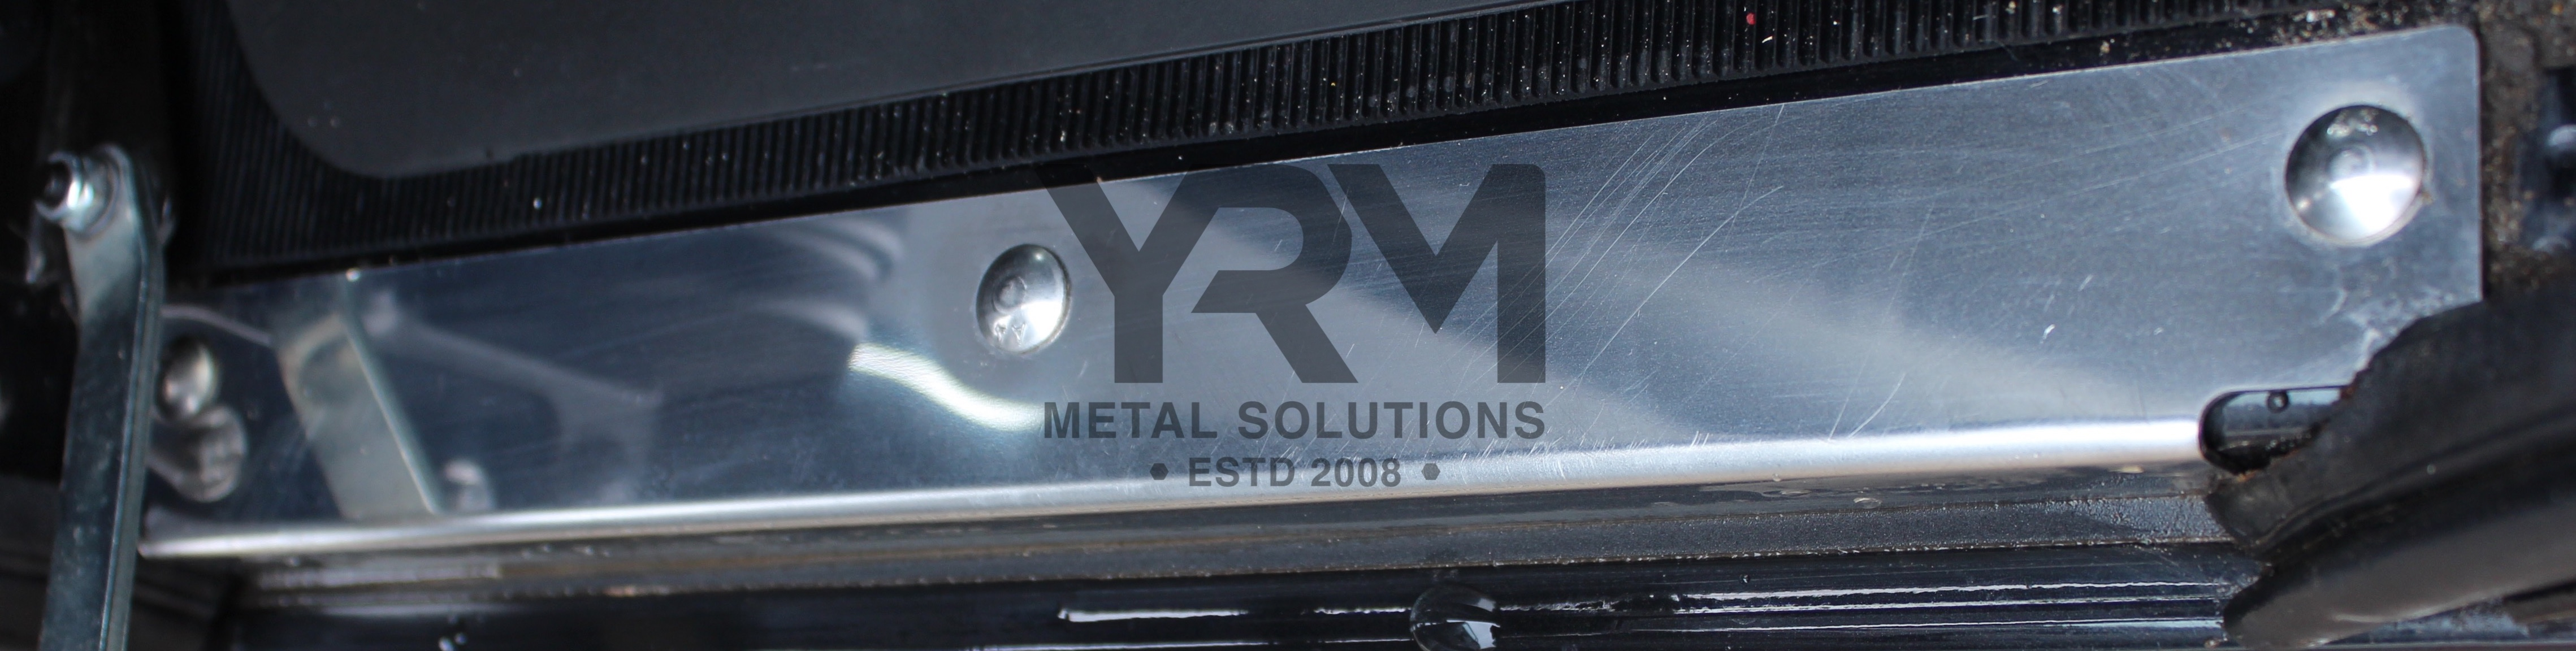 Stainless Steel Door Thresh Yrm Metal Solutions